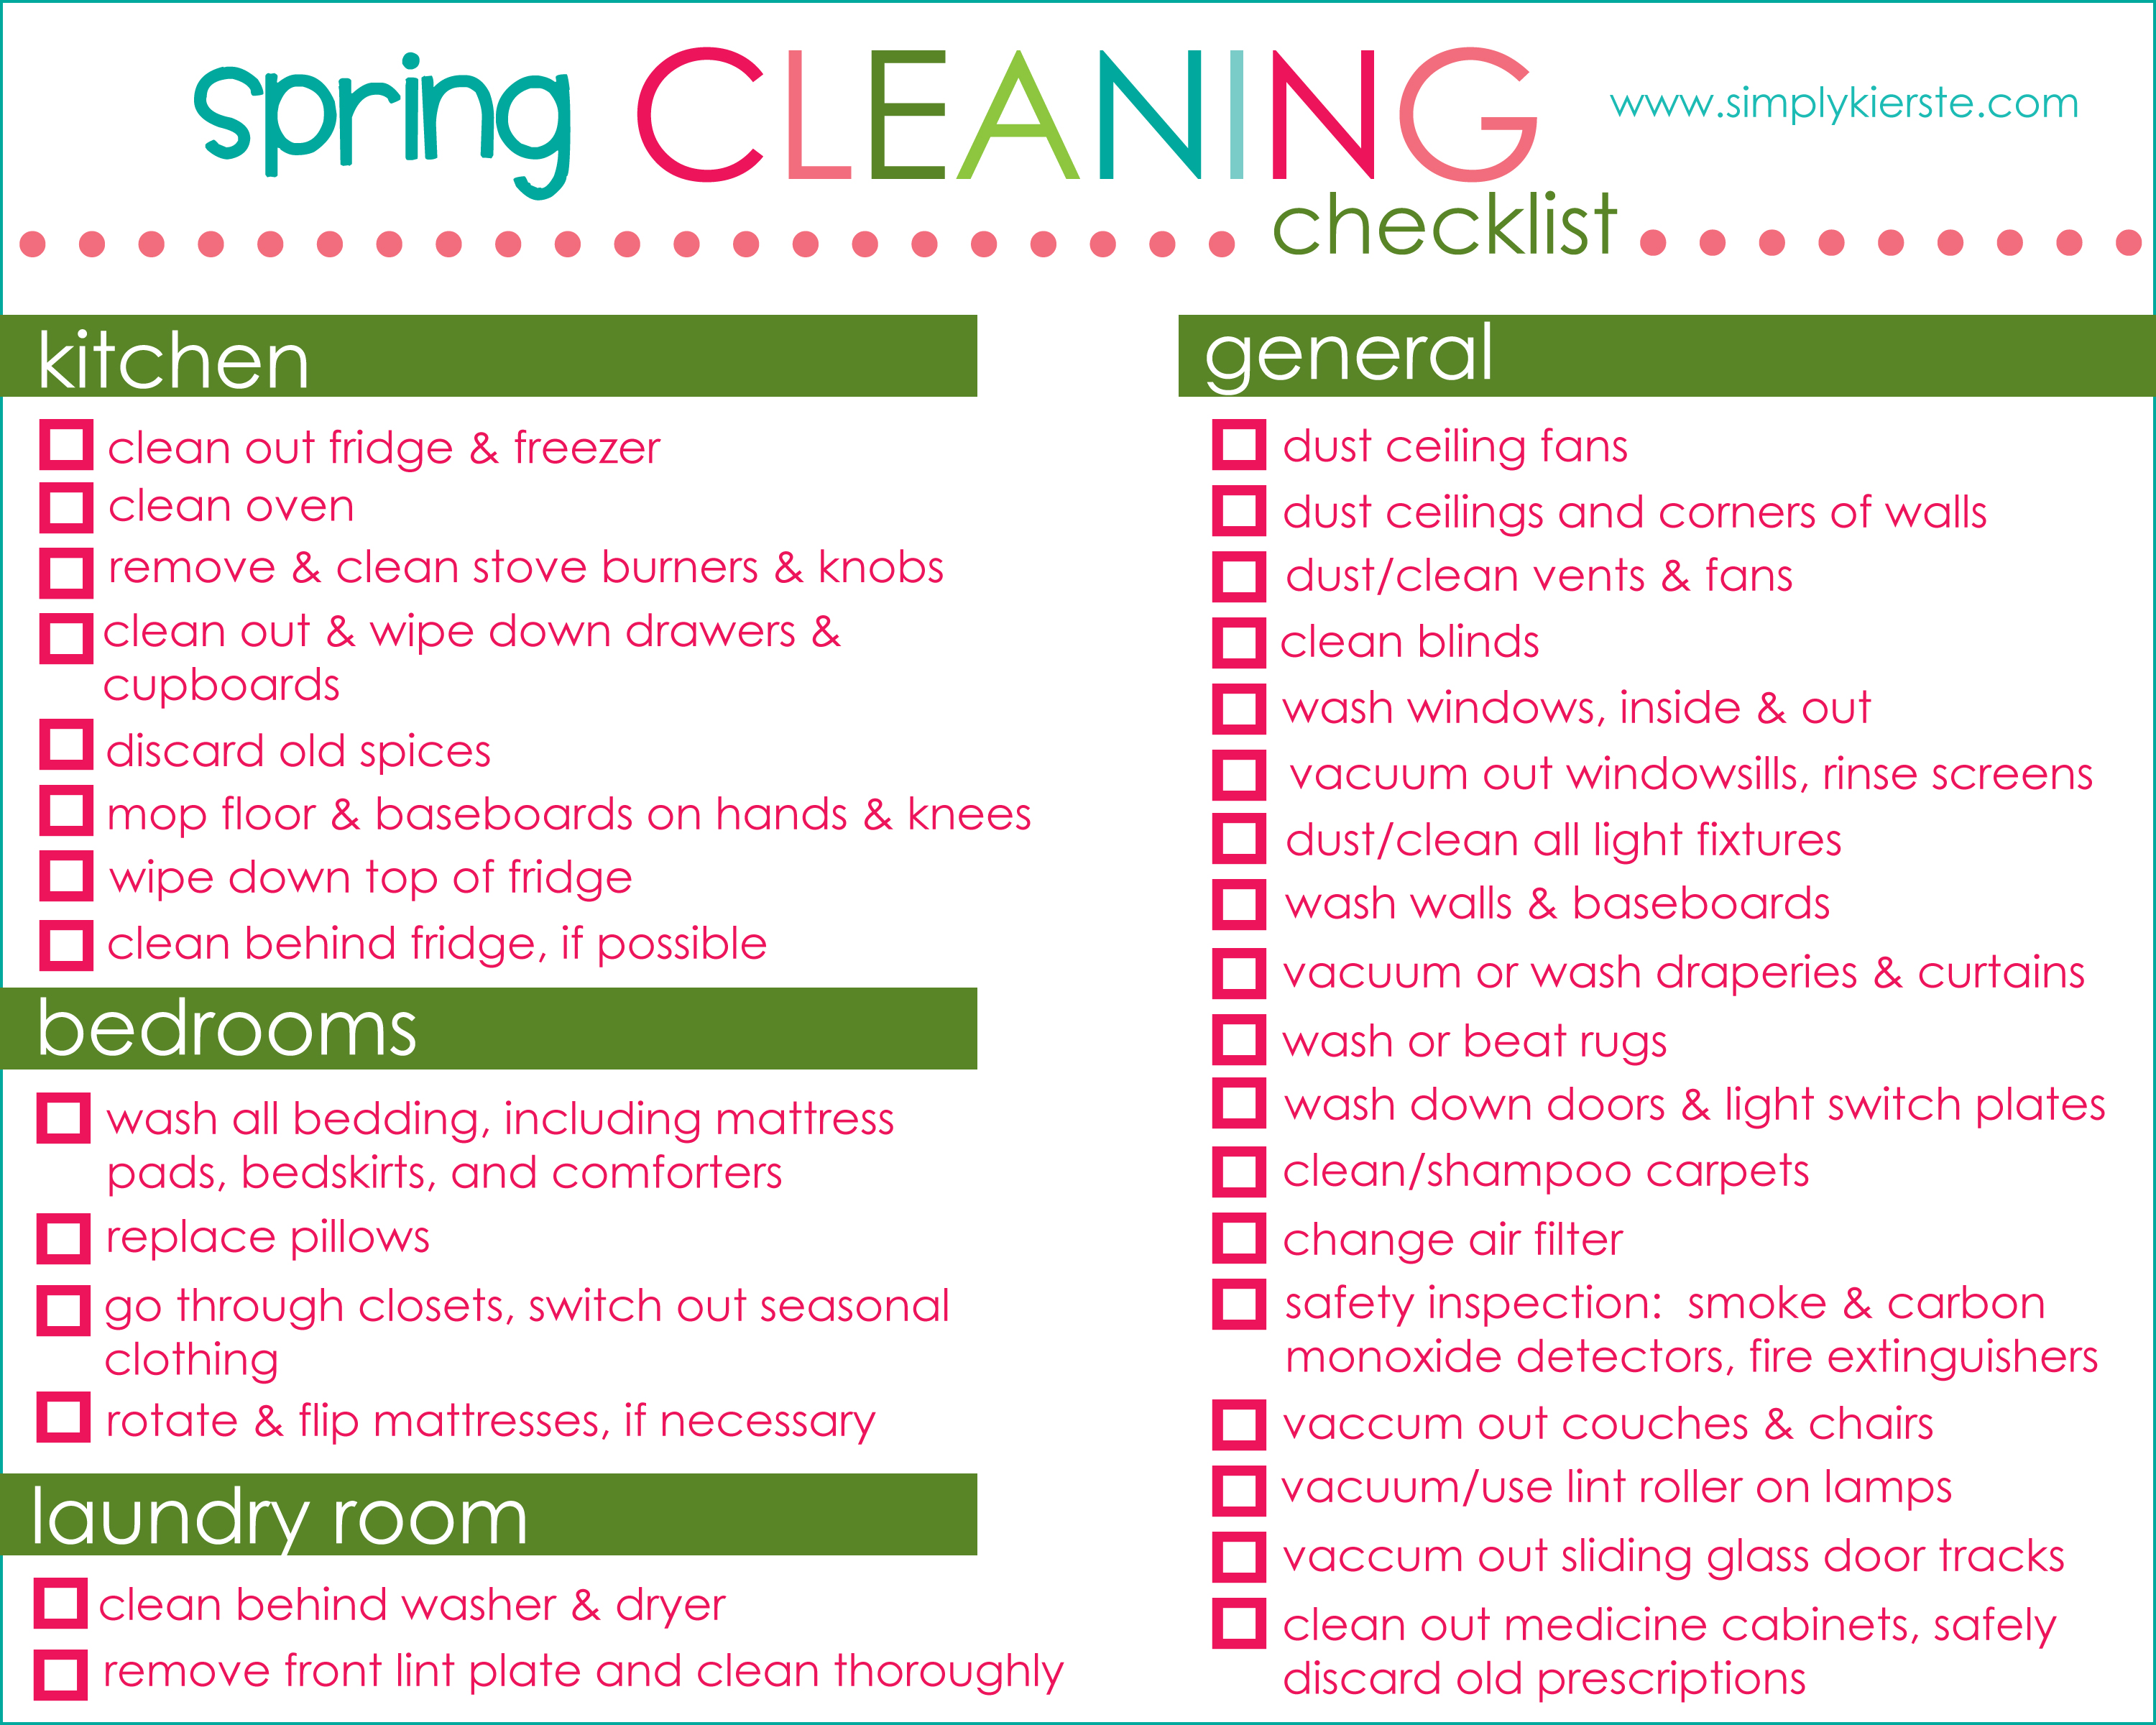 8 Images of Spring Cleaning Printable Checklist By Room